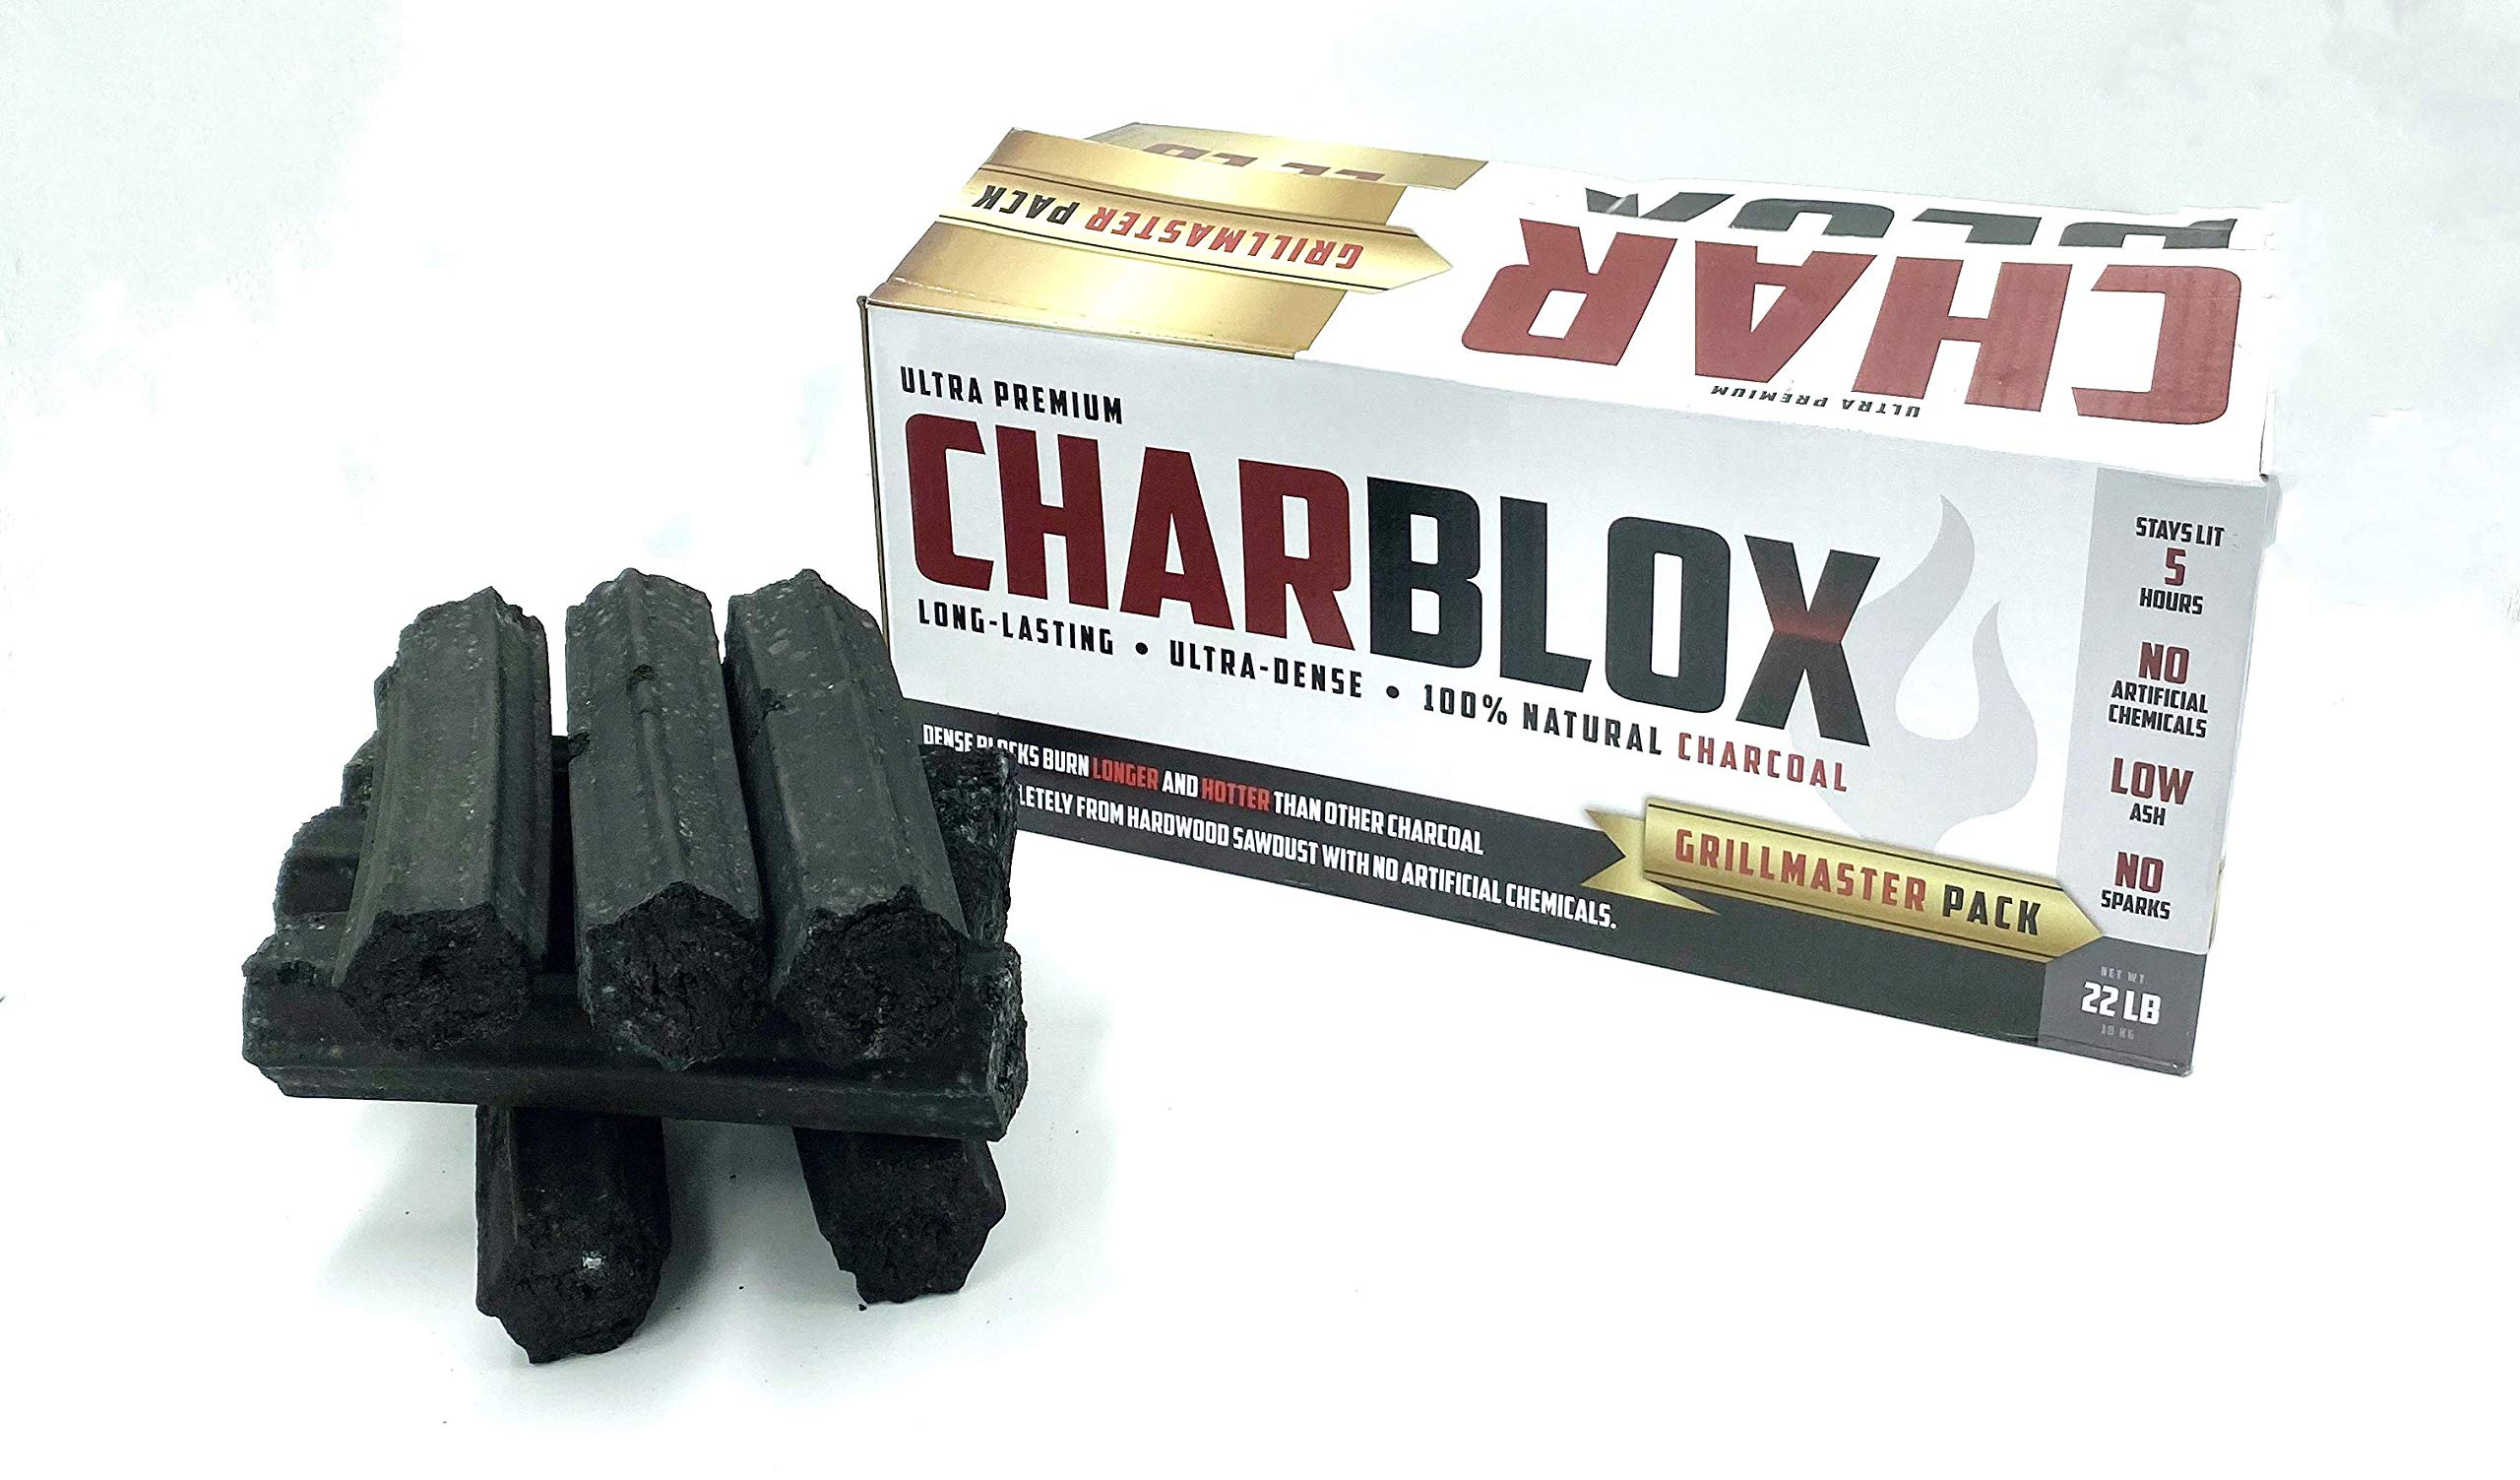 CHARBLOX Ultra Premium Hardwood Grilling Charcoal Logs - Grillmaster Pack by CHARBLOX